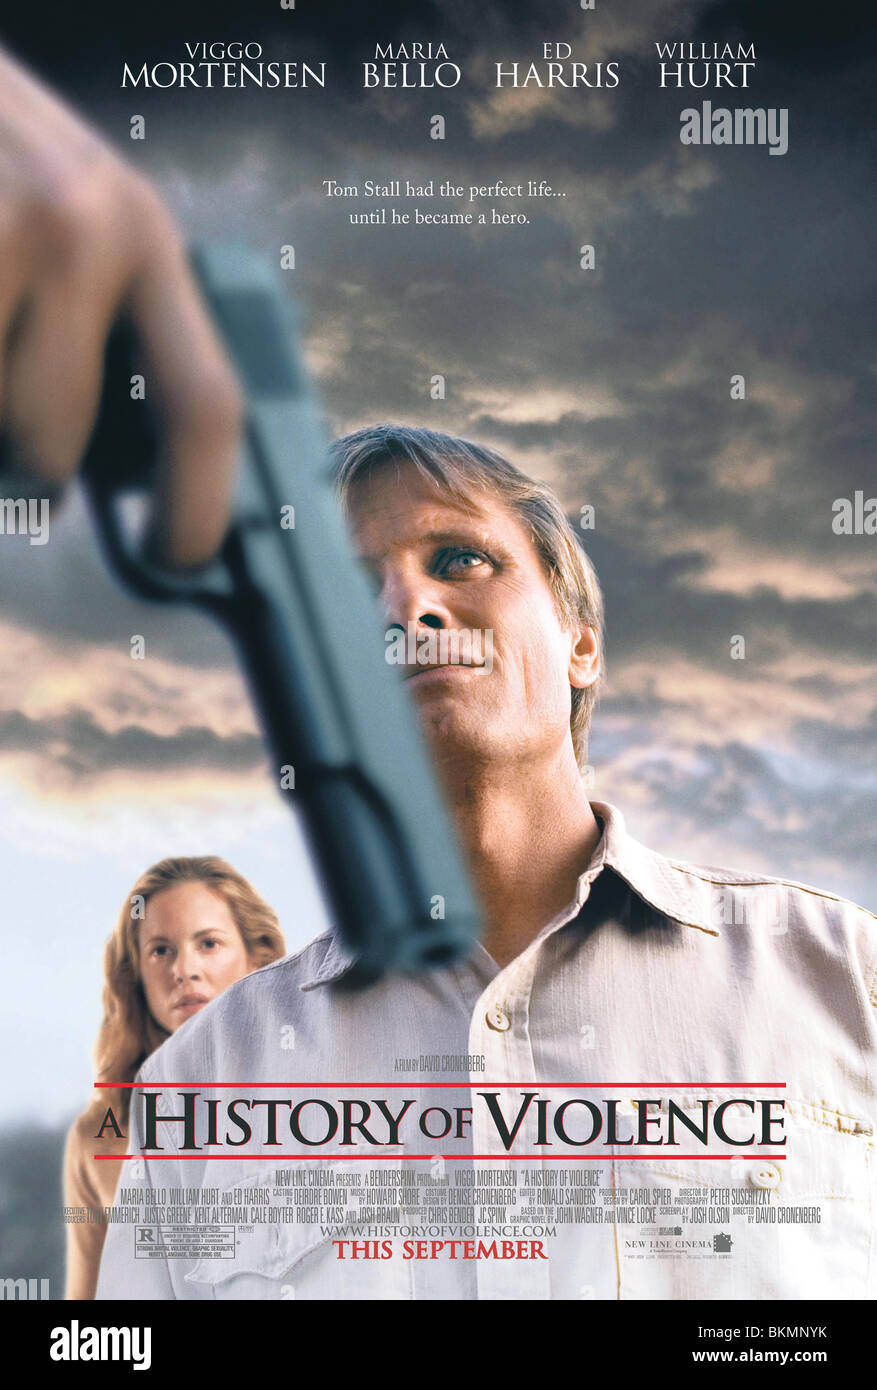 A HISTORY OF VIOLENCE (2005) POSTER HOFV 001-22 - Stock Image